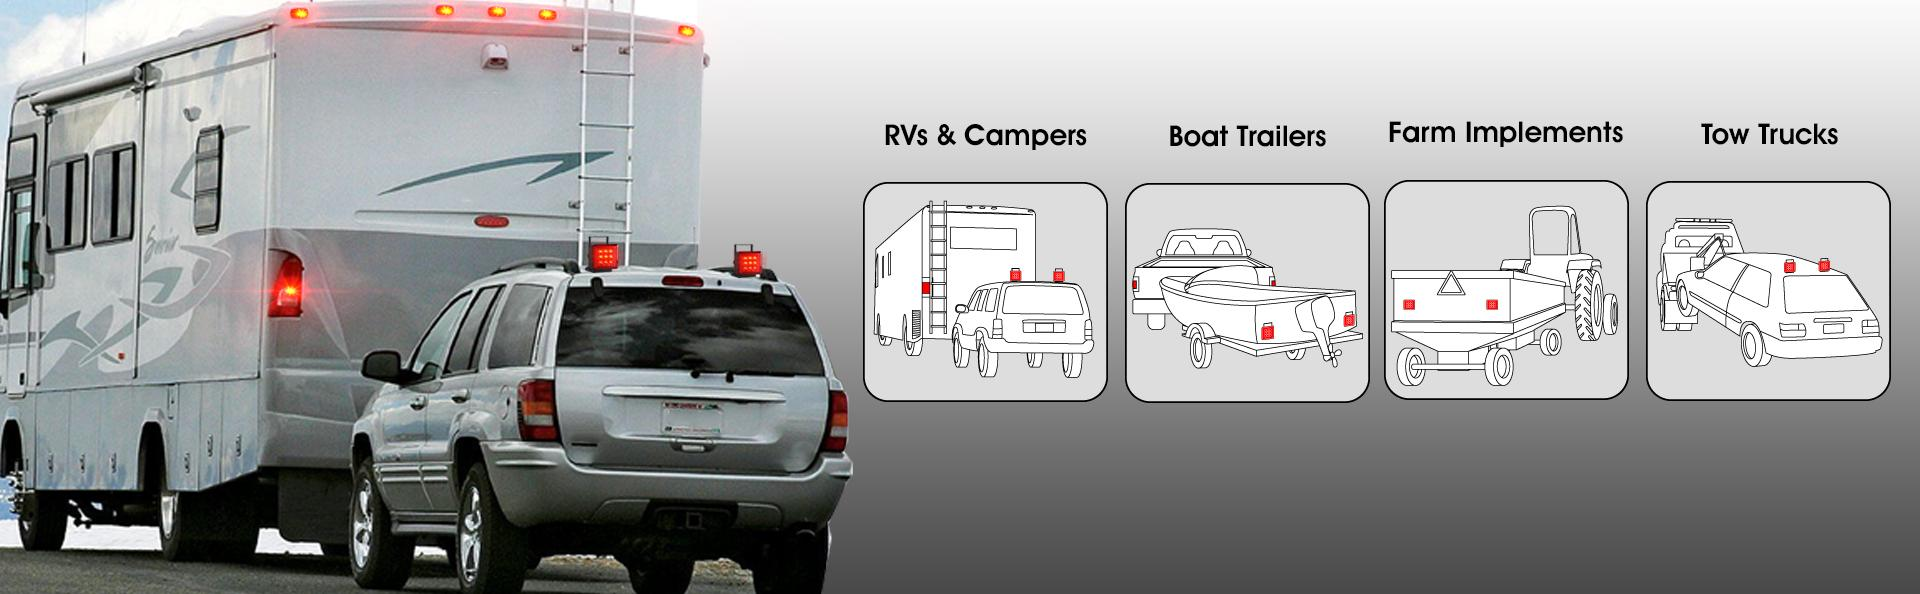 Bully Nv 5164 Wireless Led Trailer Towing Light Automotive Three Prong To 4 Flat Wiring Diagram View Larger